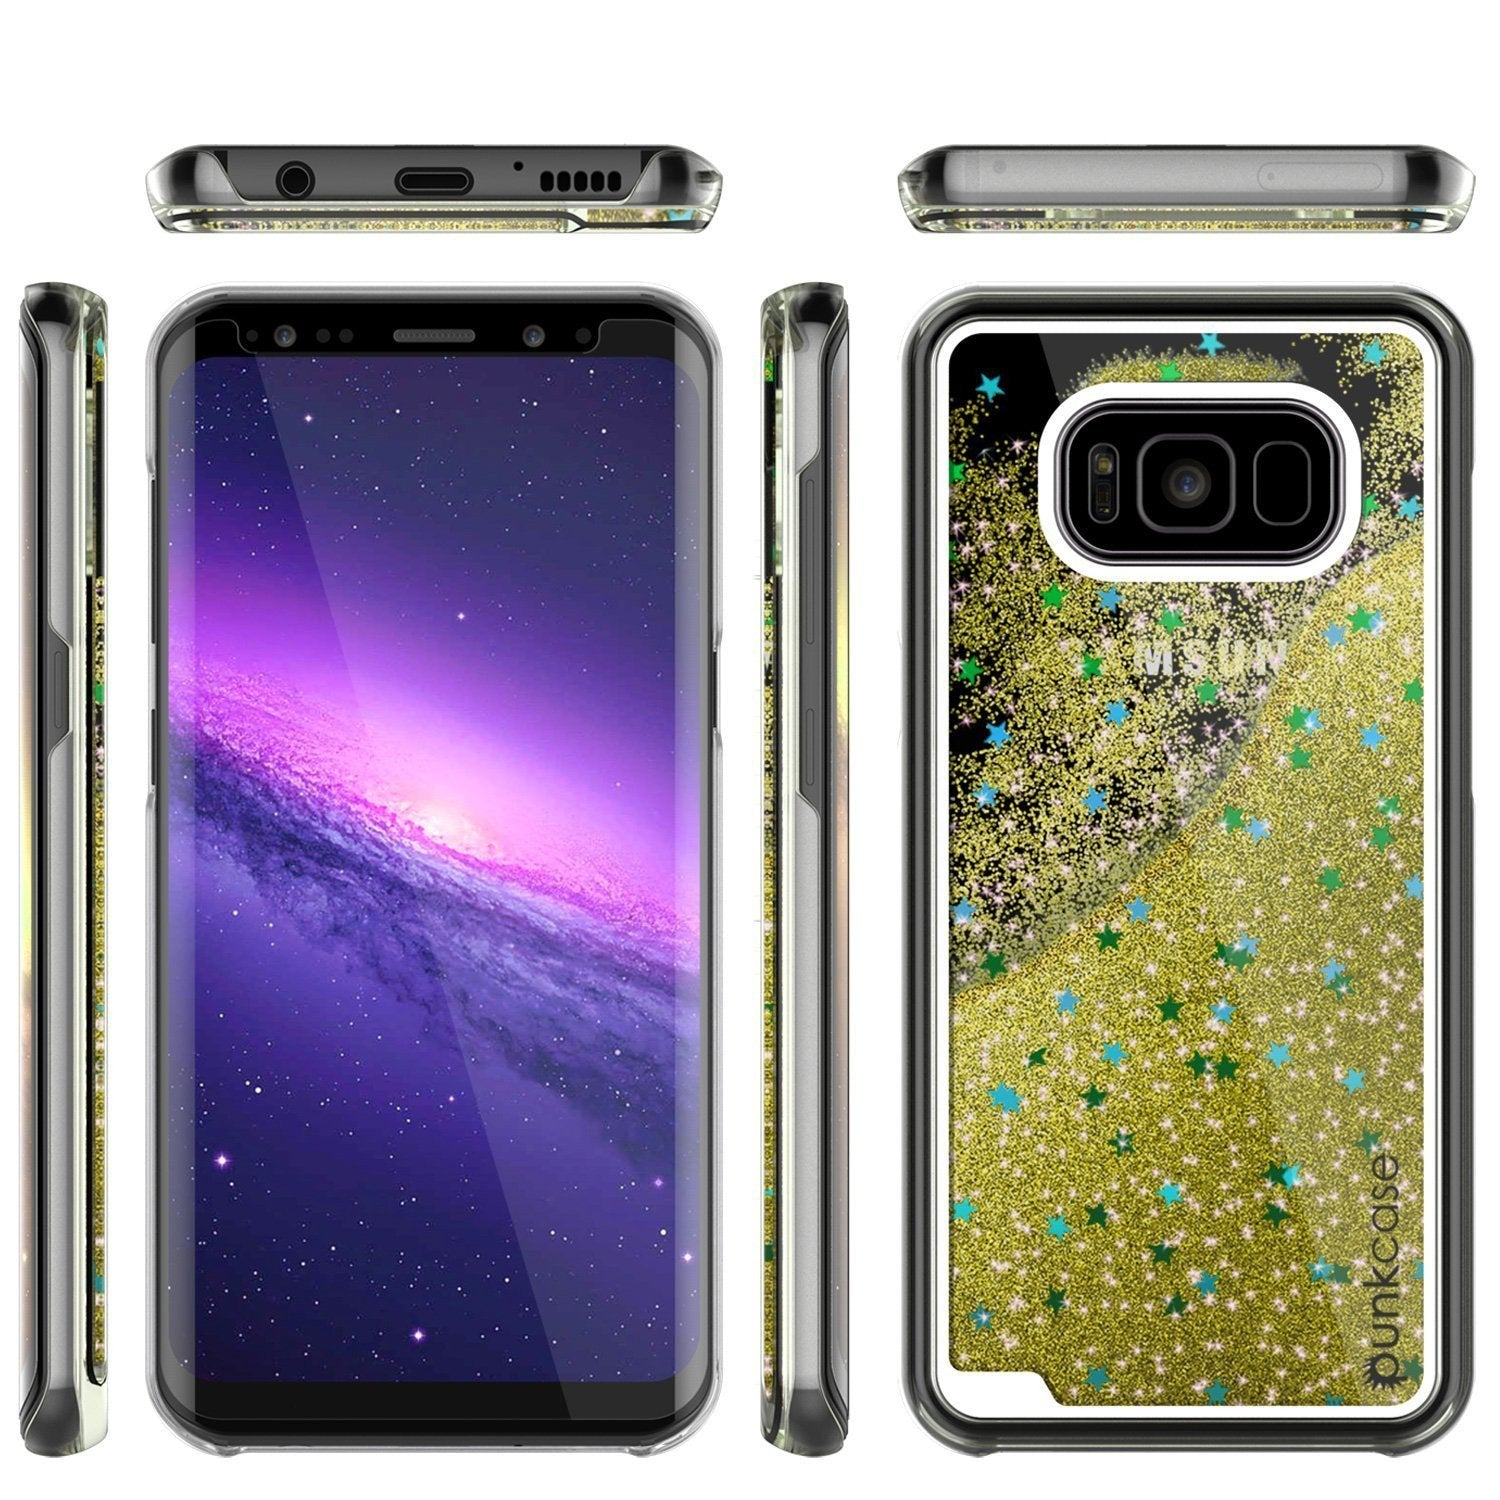 S8 Plus Case, Punkcase [Liquid Series] Protective Dual Layer Floating Glitter Cover with lots of Bling & Sparkle + PunkShield Screen Protector for Samsungs Galaxy S8+ [Gold] - PunkCase NZ